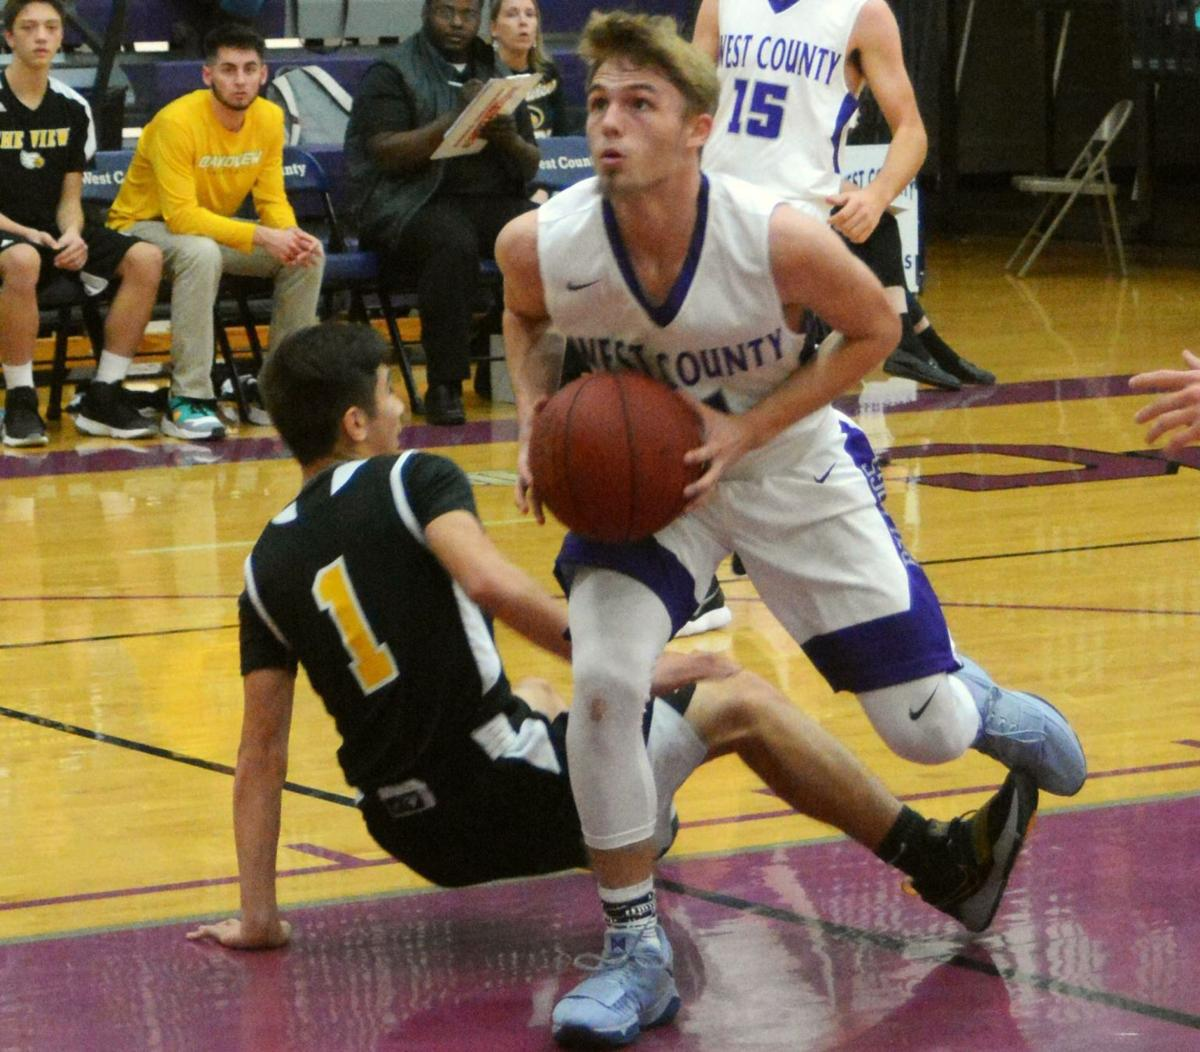 West County Basketball